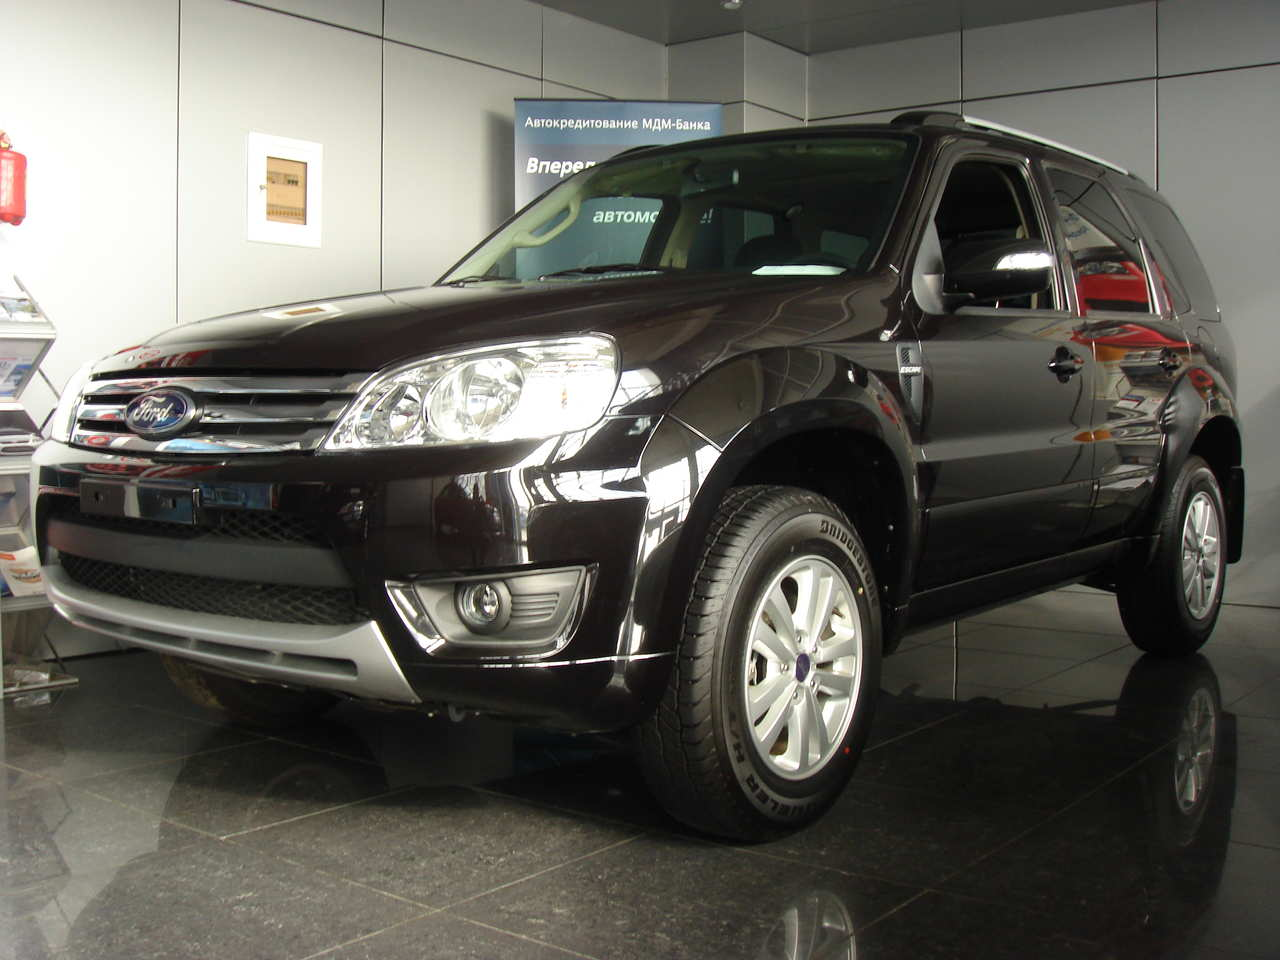 2009 FORD Escape Pictures, 2.3l., Gasoline, Automatic For Sale